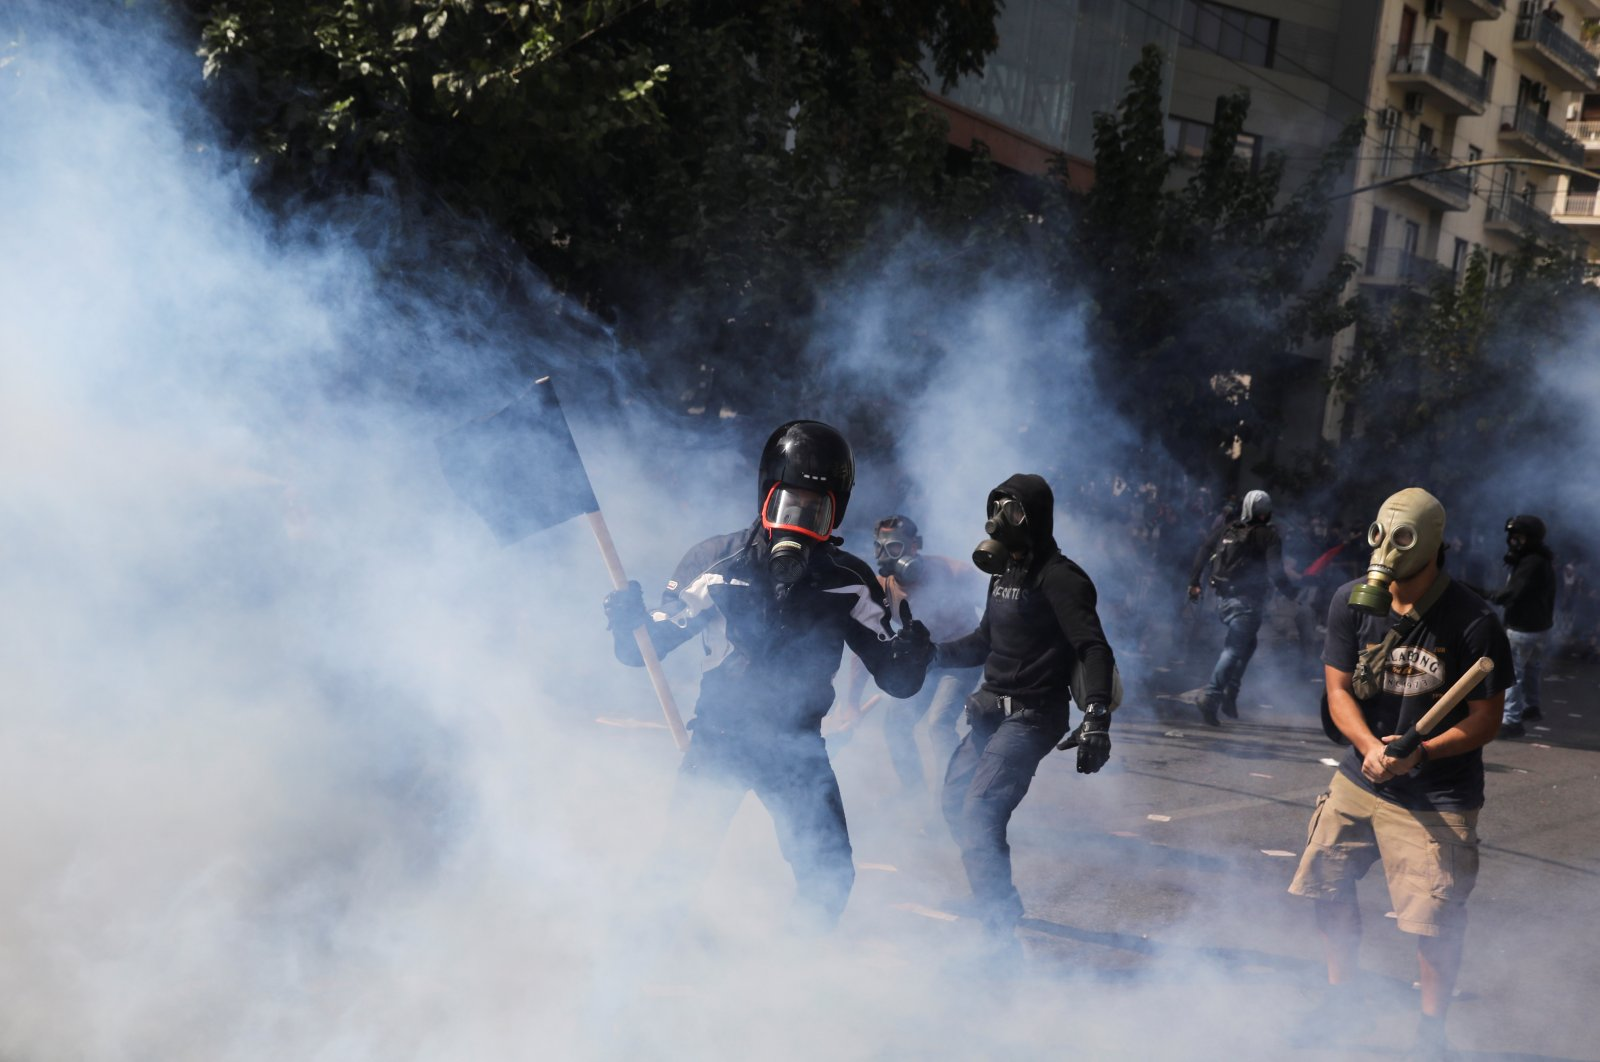 Protesters are seen among tear gas during clashes outside a court, Athens, Oct. 7, 2020. (REUTERS Photo)